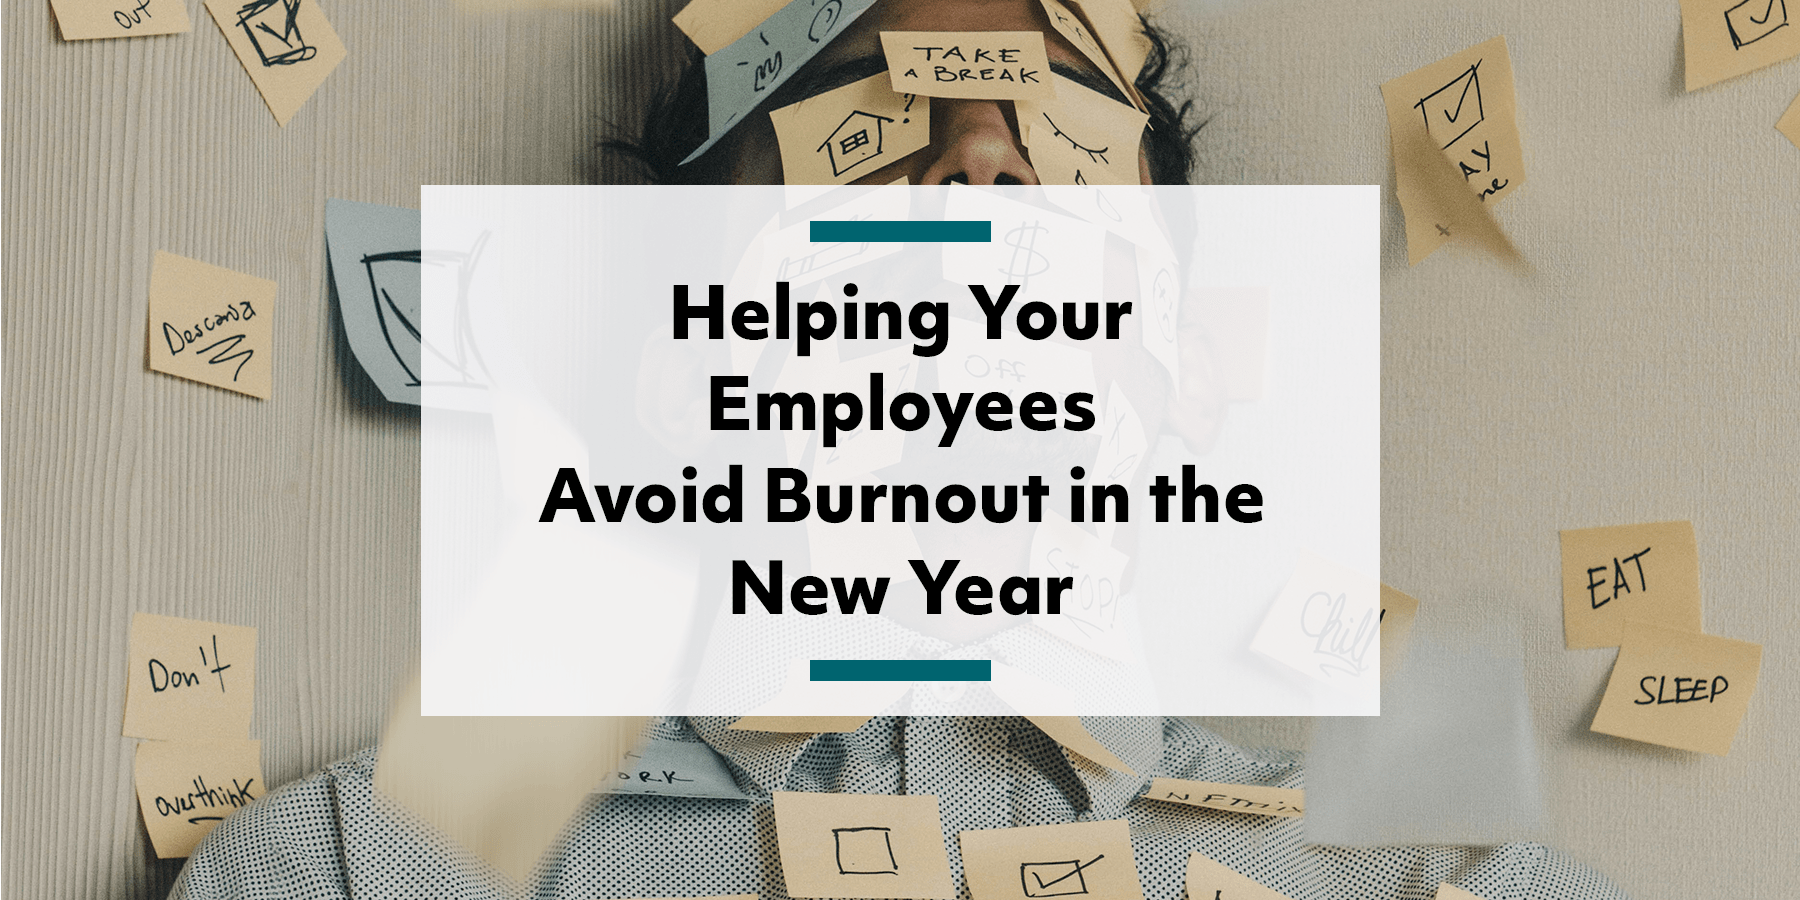 Feature image for helping your employees avoid burnout in the new year